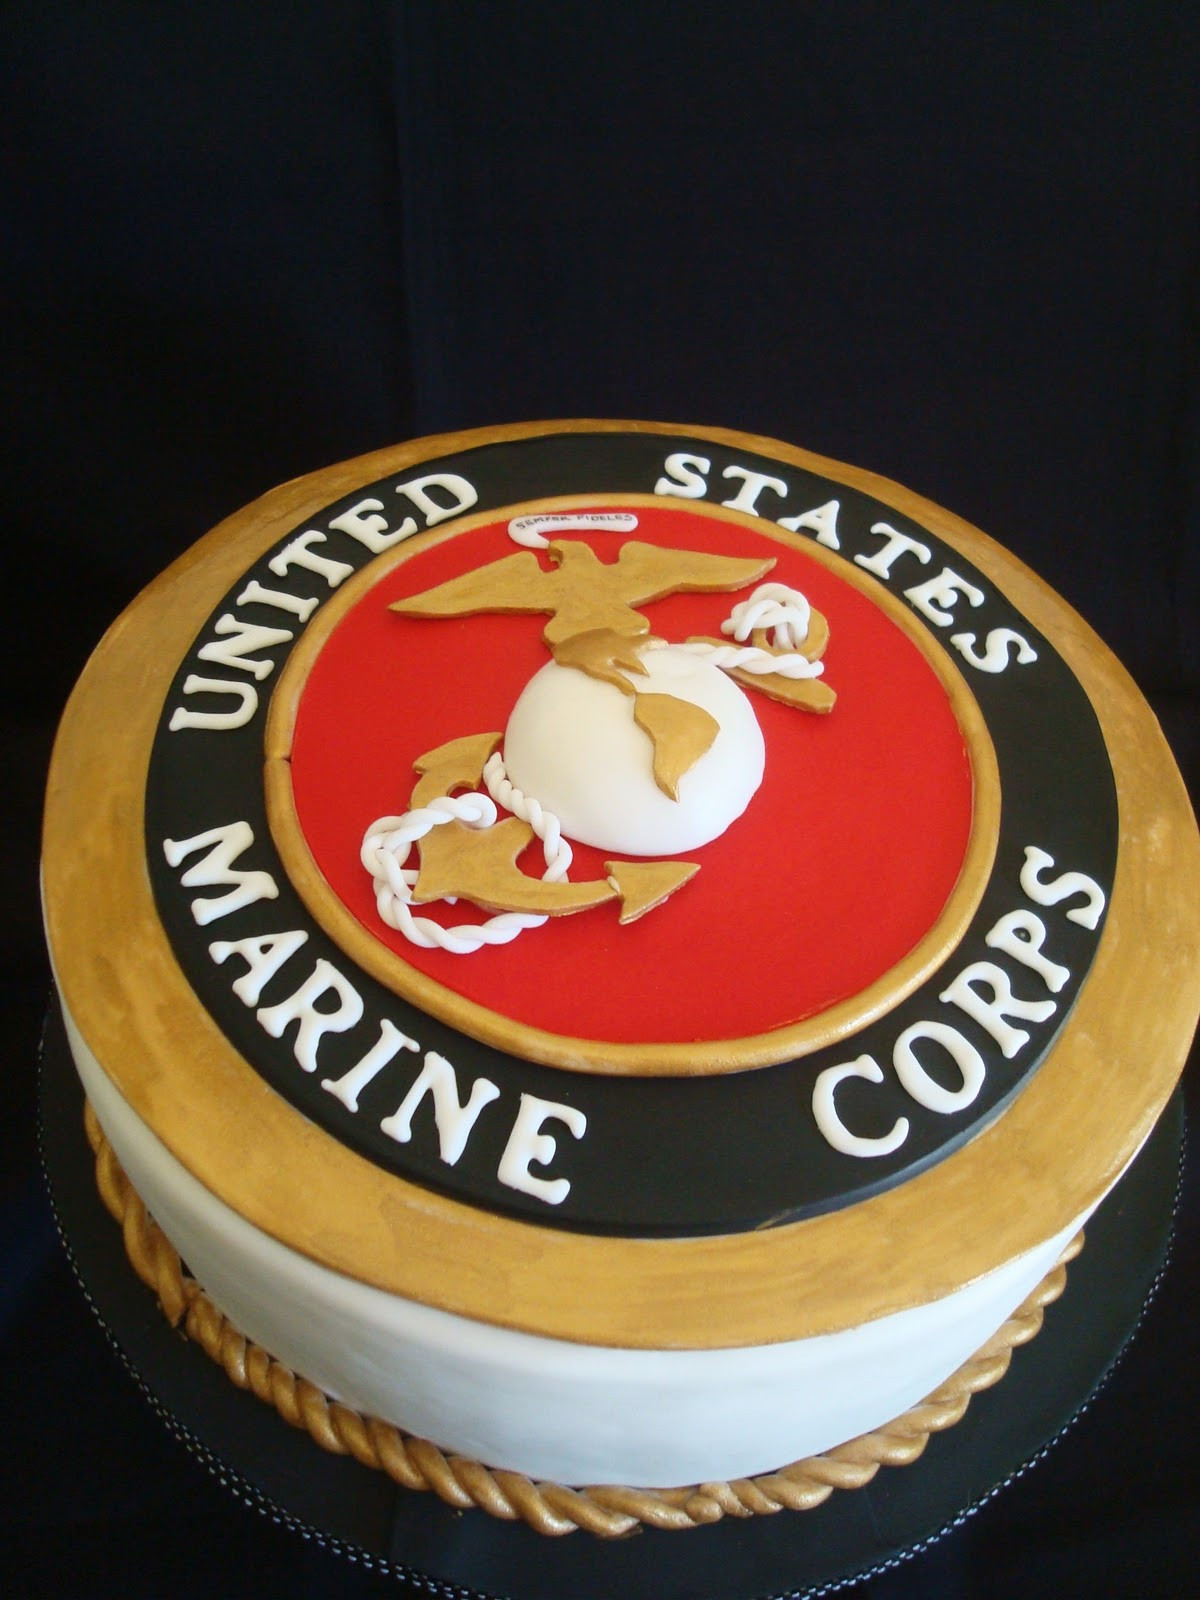 Best ideas about Marine Corp Birthday Cake . Save or Pin My Pink Little Cake Marine Corps Groom cake Now.